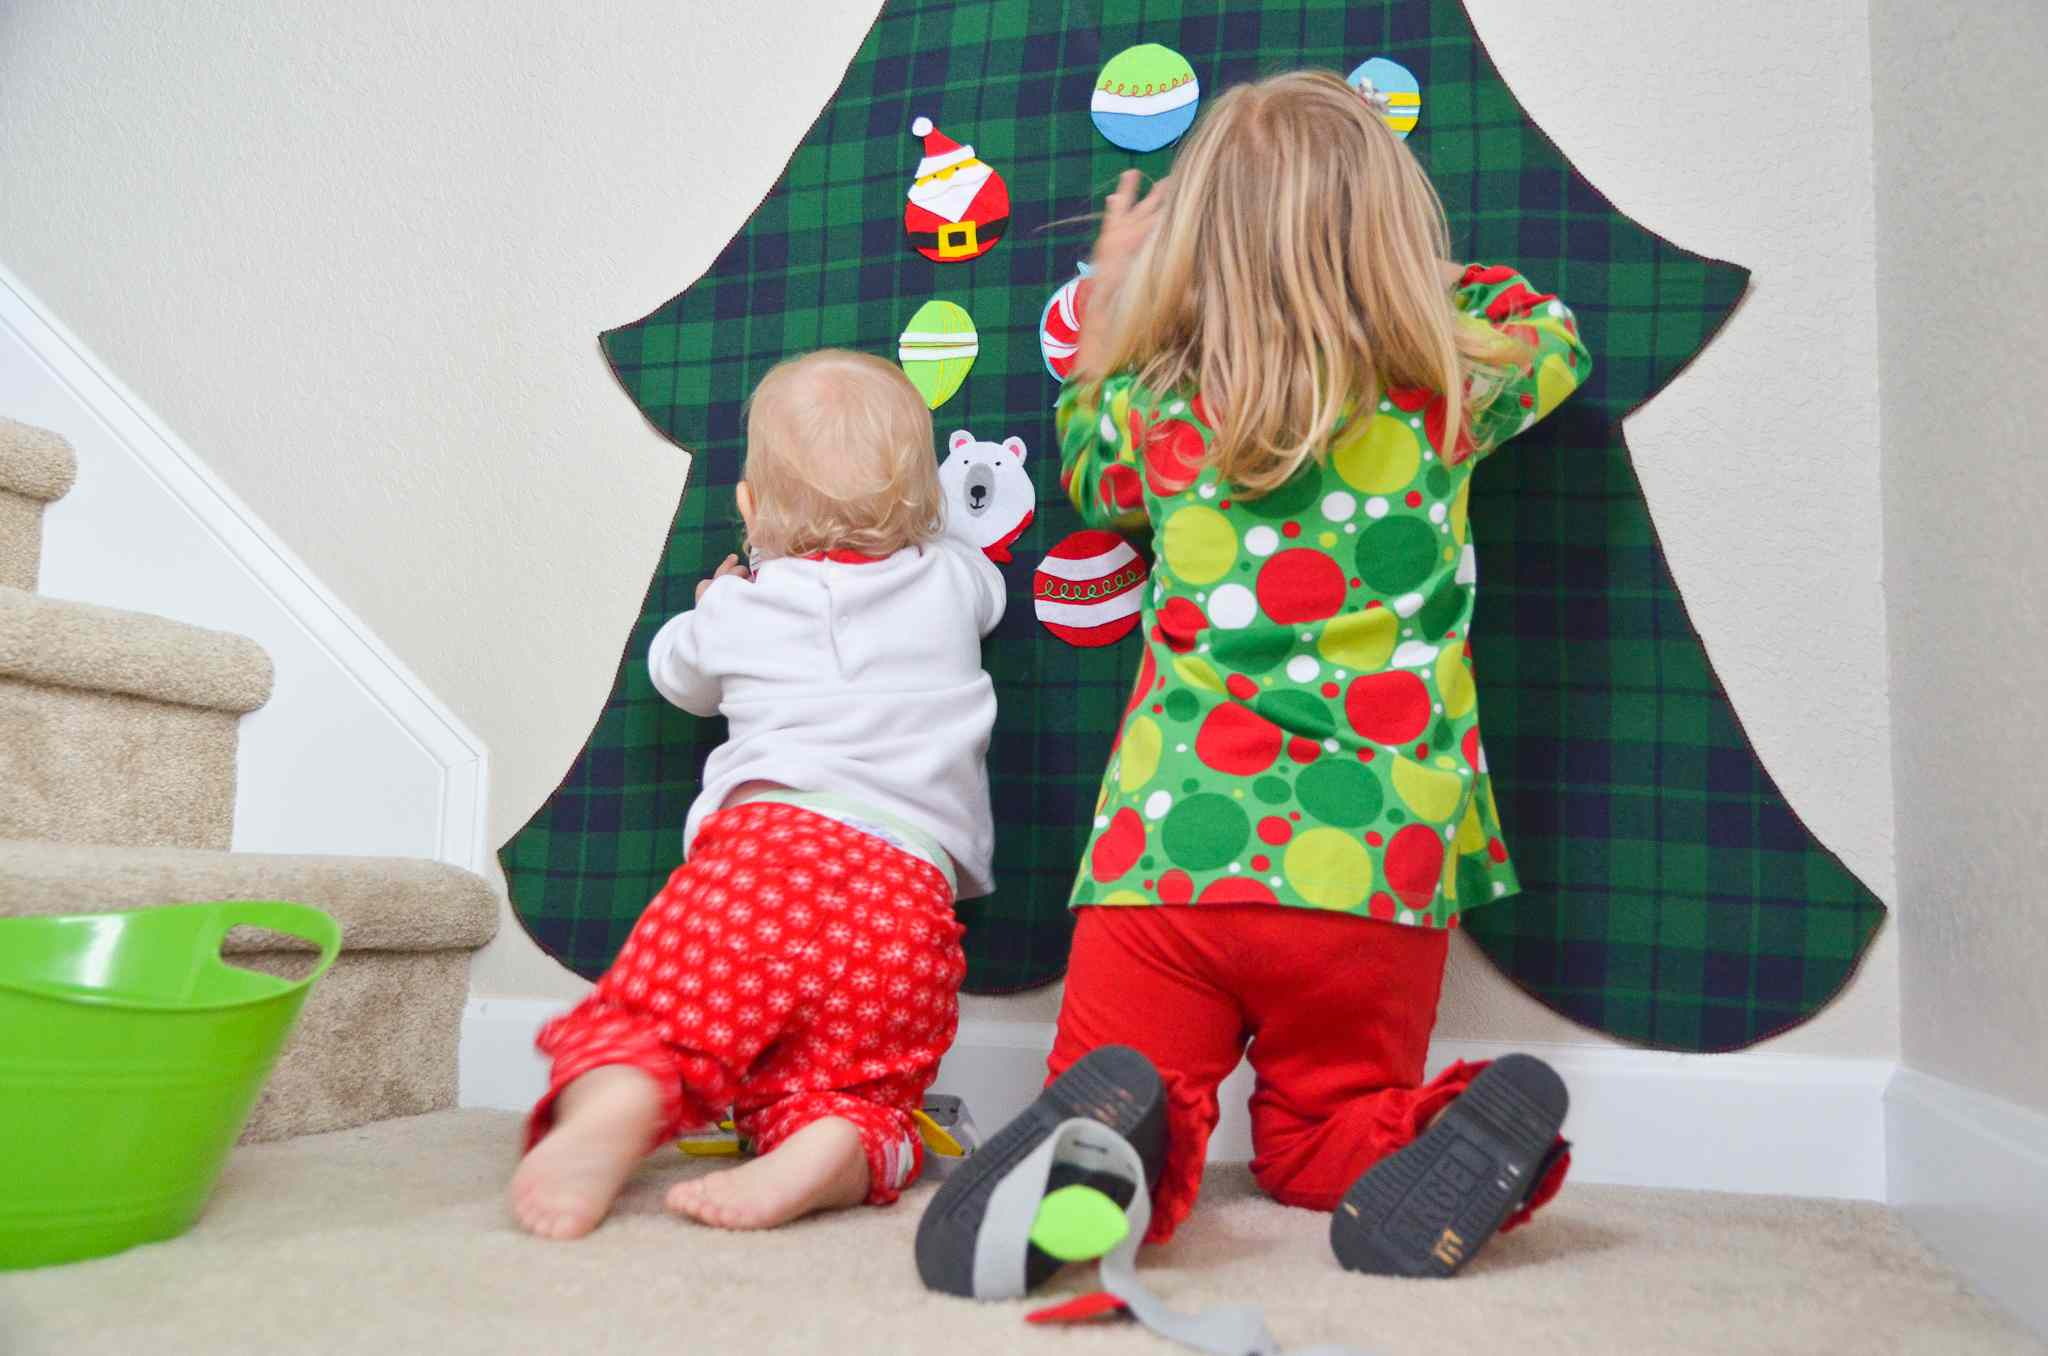 Two kids hanging up felt ornaments on a felt Christmas tree on the wall.